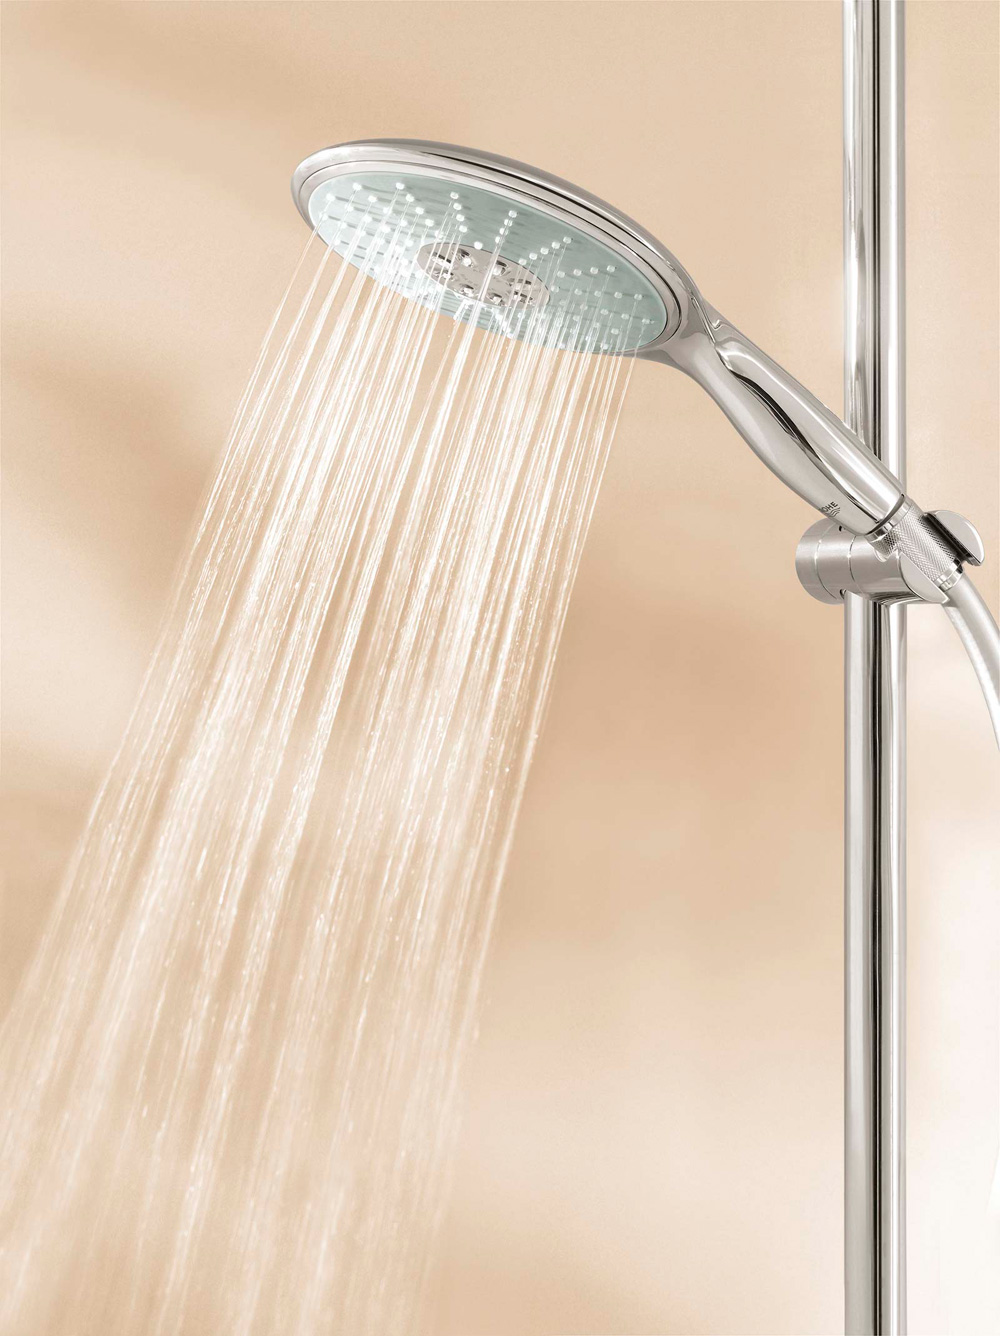 Colonne douche Grohe power and soul 3